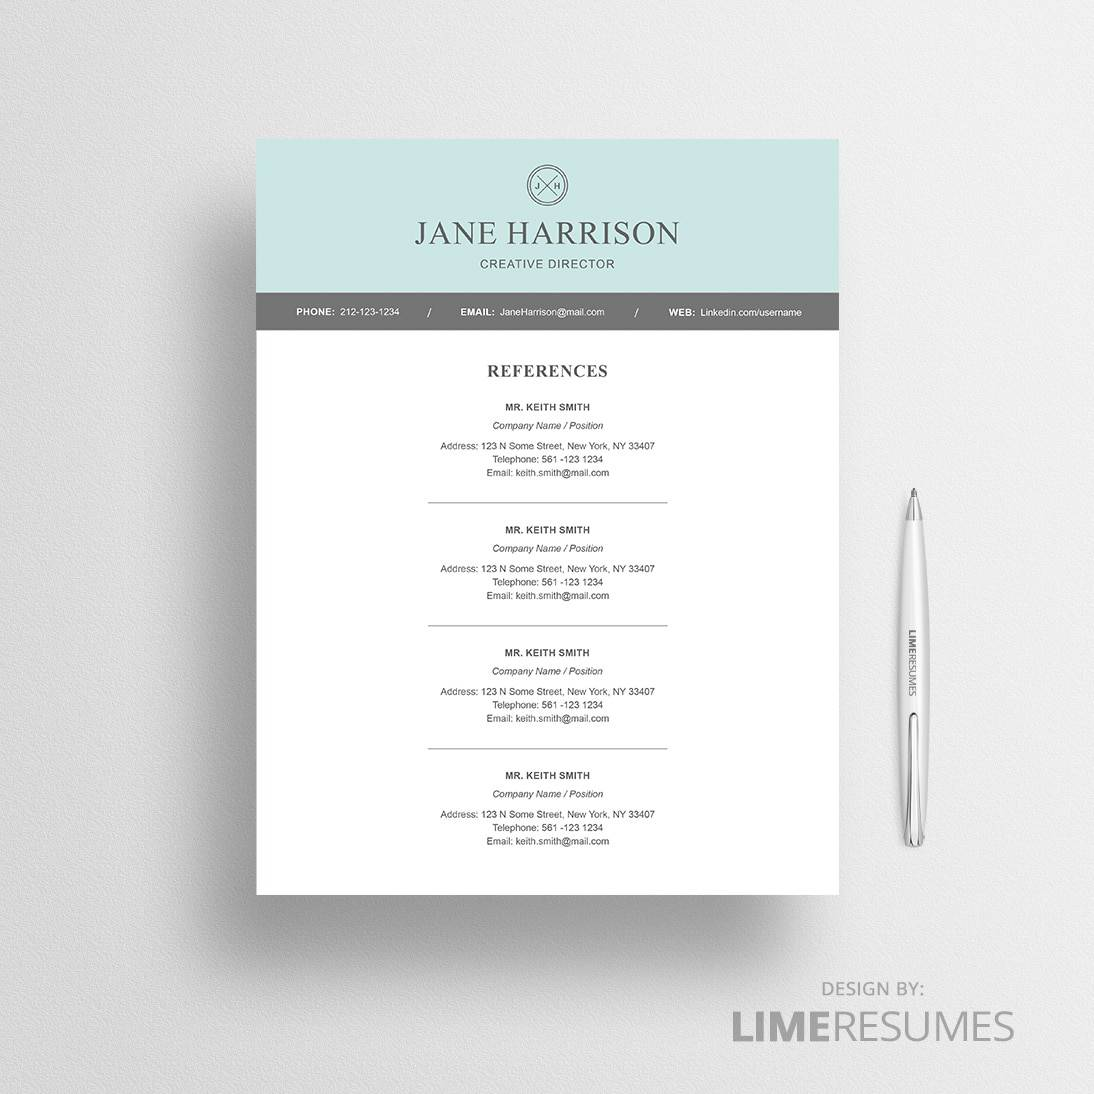 Reference Page For A Resume Resume Template 18